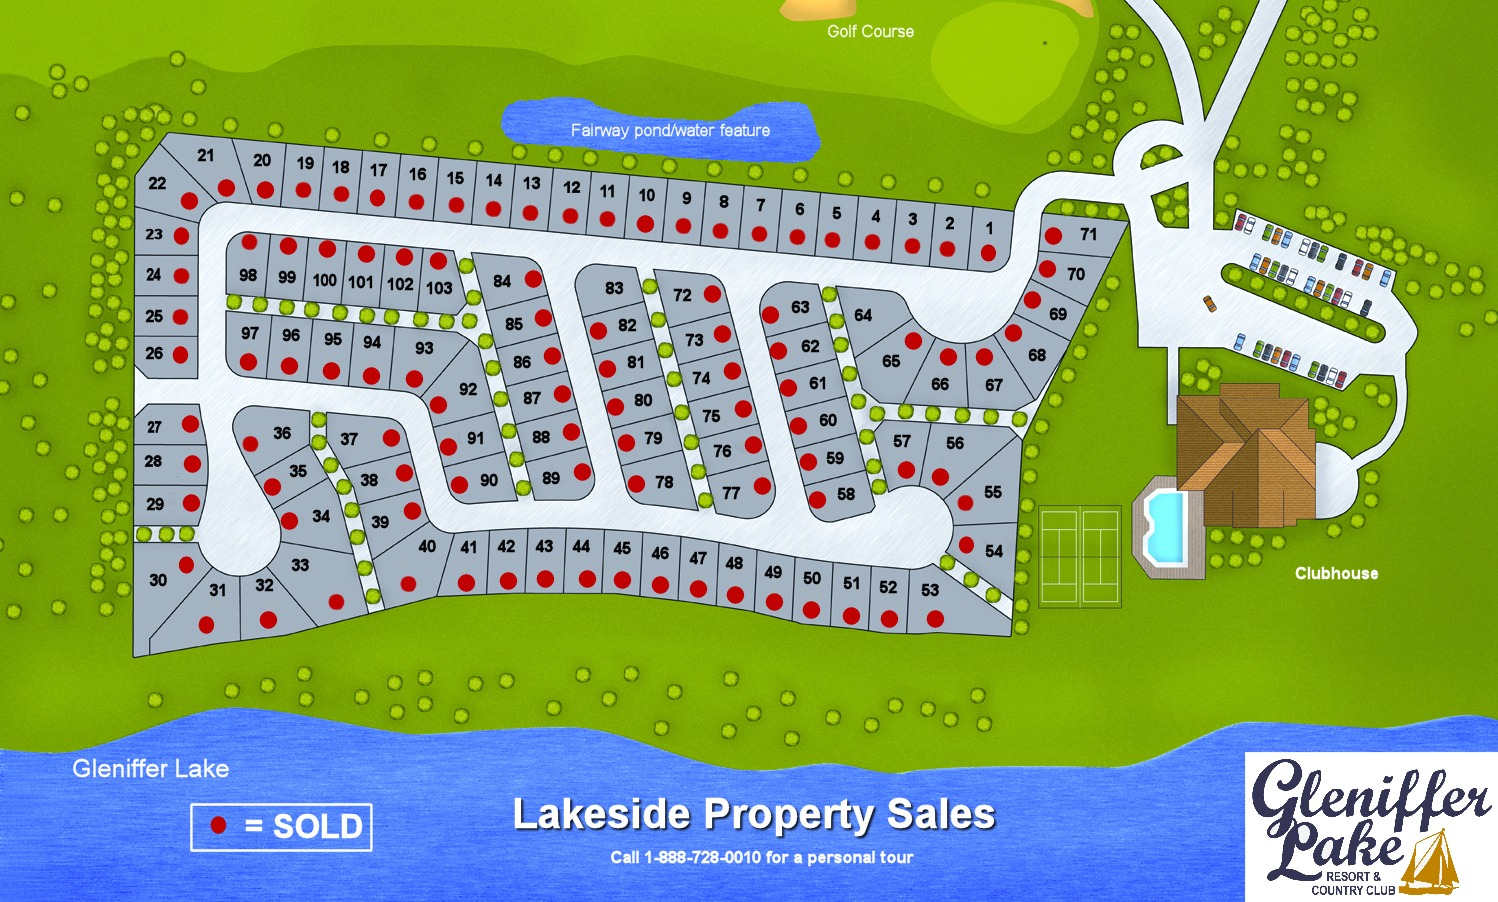 Phase 7 Property Sales Available Lots